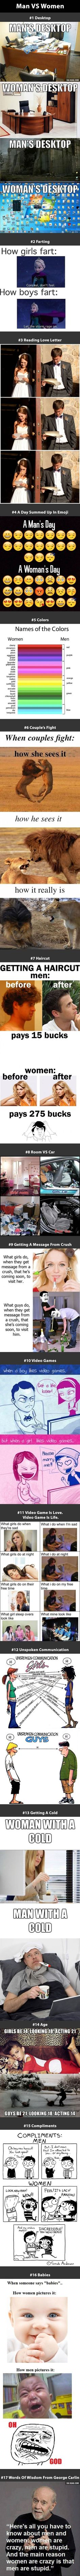 17 Differences Between Men And Women - 9GAG